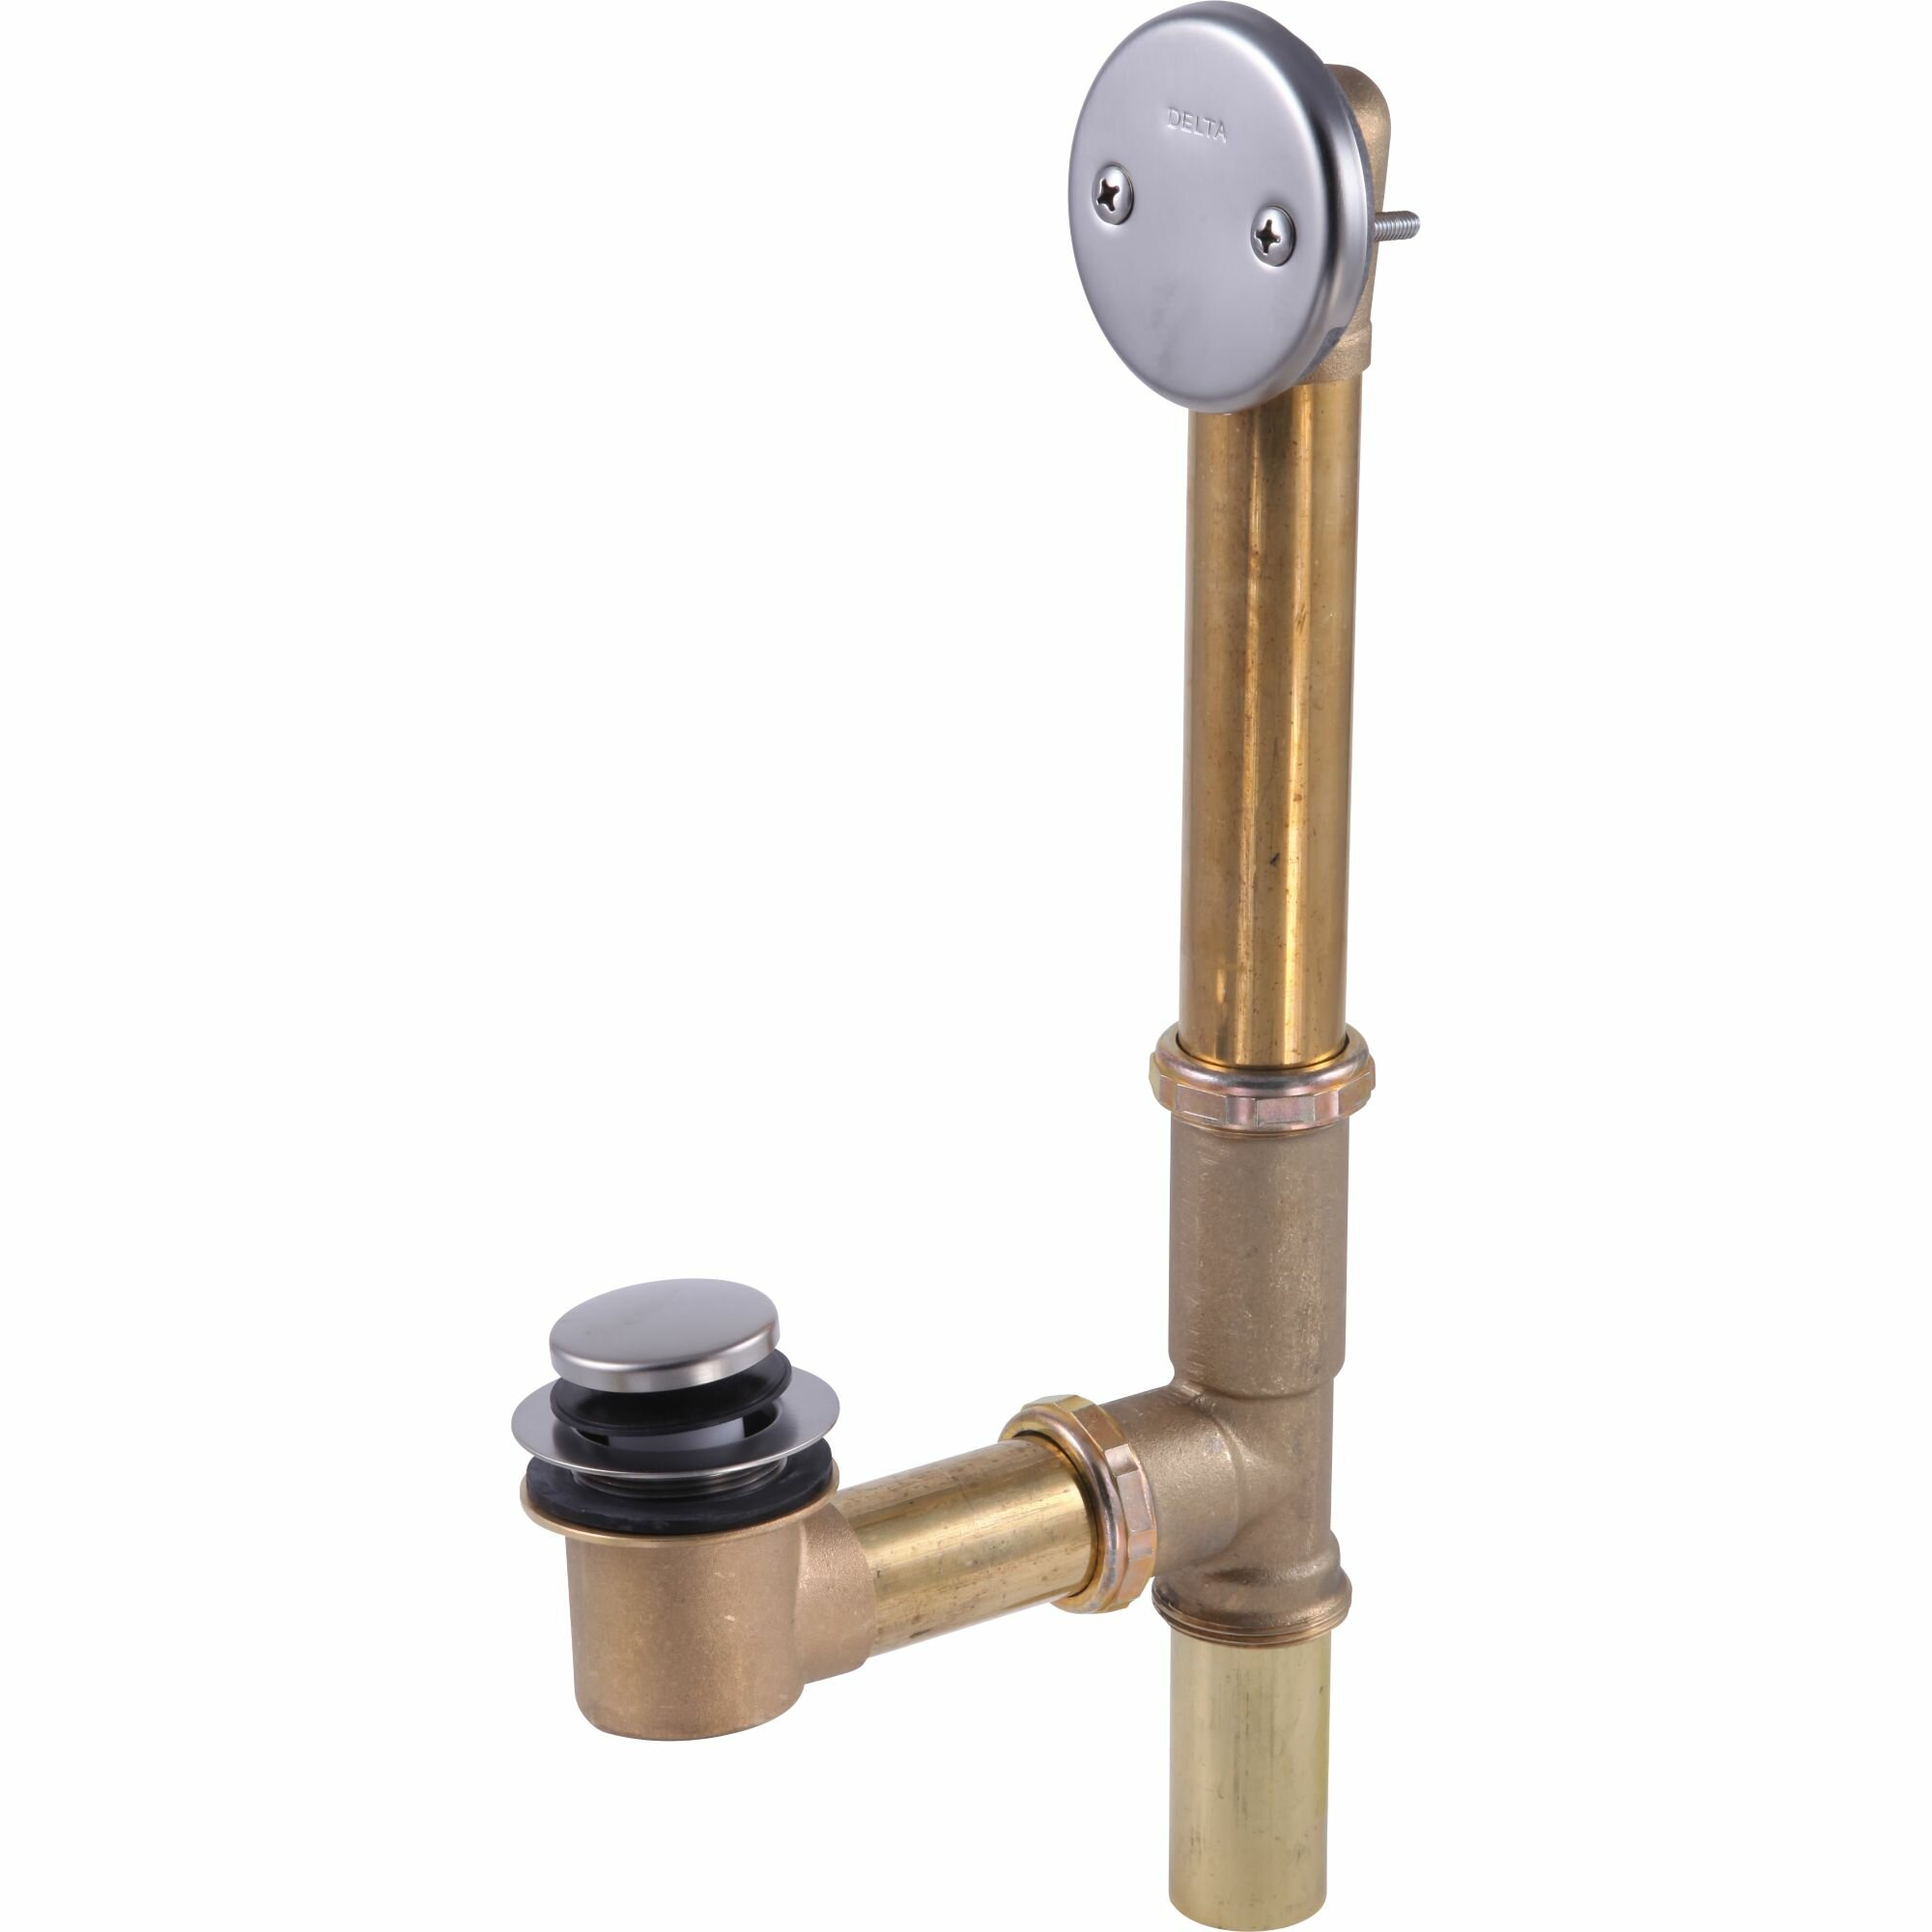 Delta Solid Brass Bath Waste Assembly Toe Touch Bathroom Sink Drain Reviews